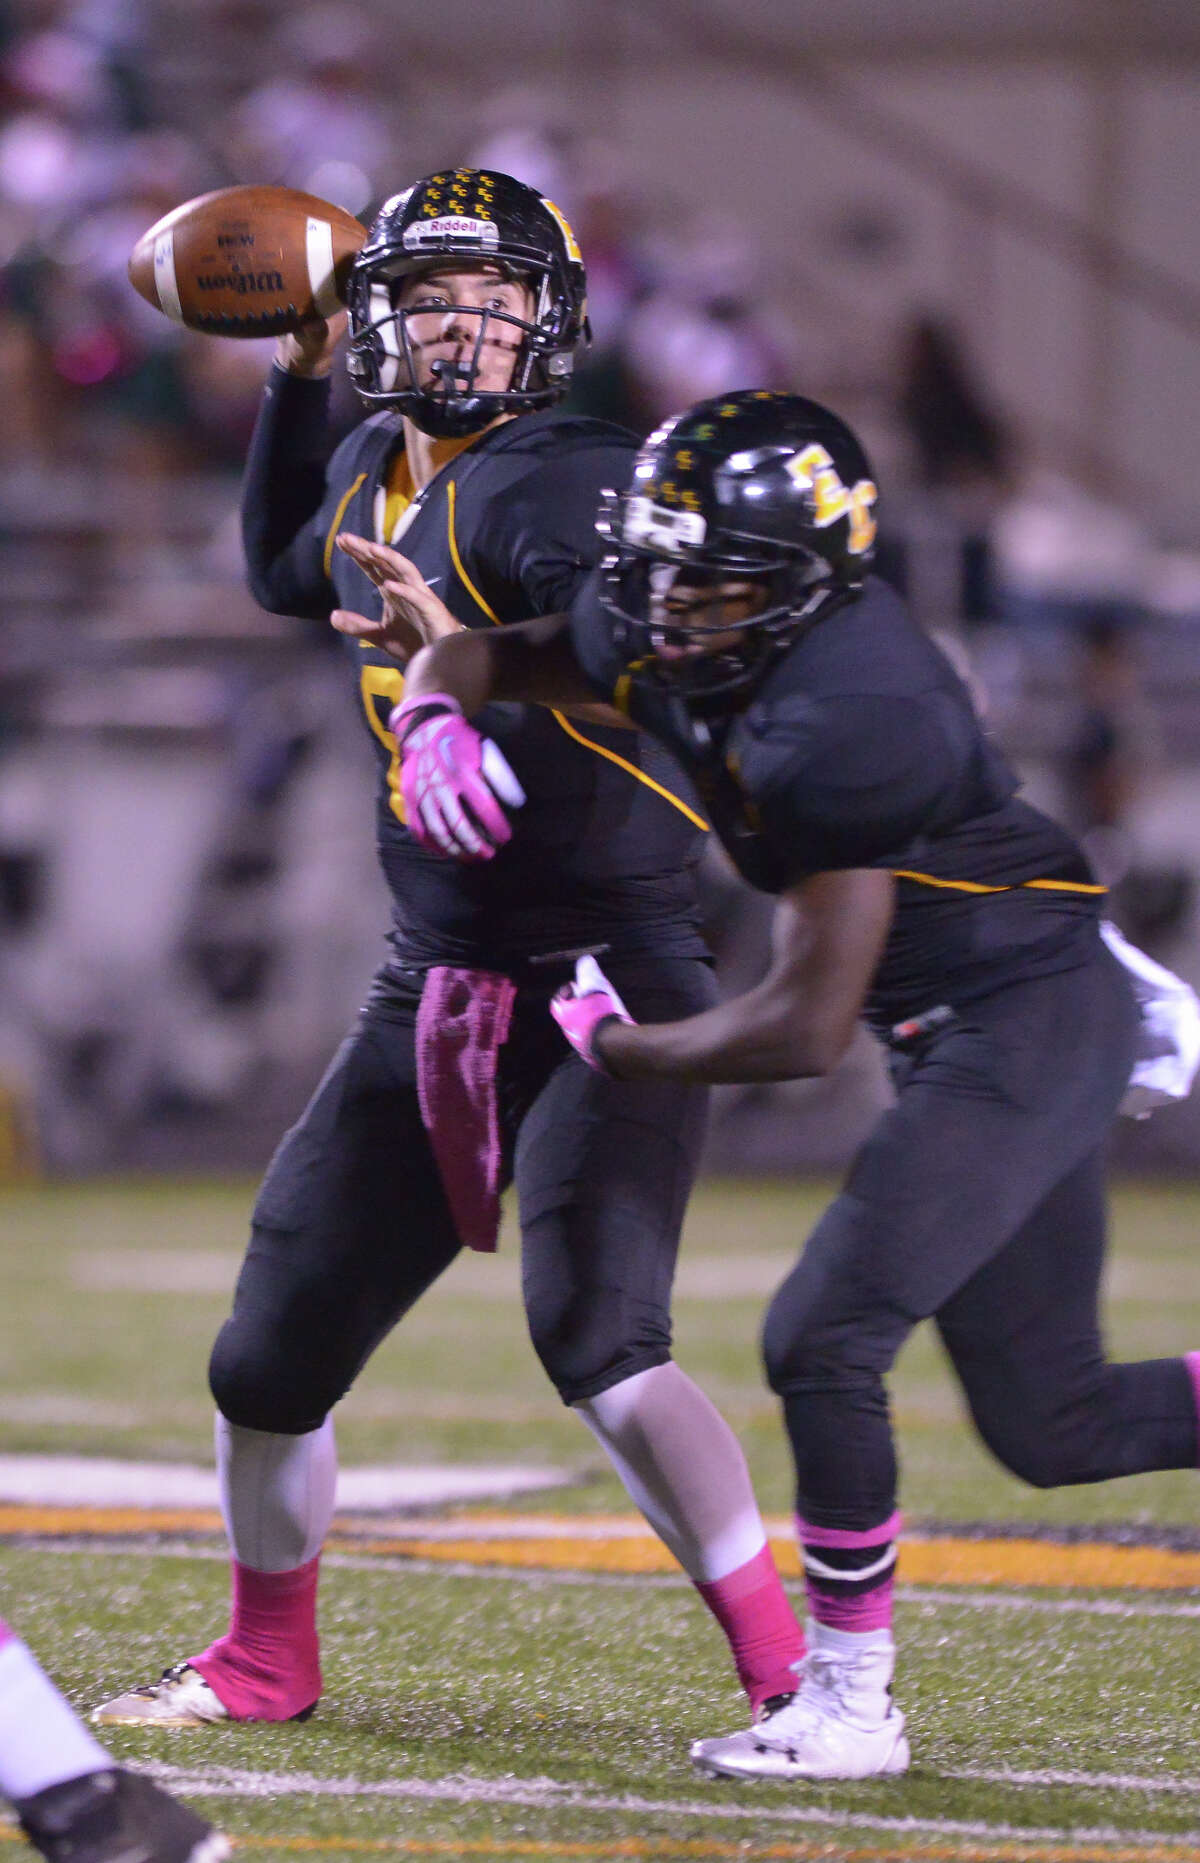 East Central's Justin Upshaw Mendoza throws a pass versus Southwest Fridat night.